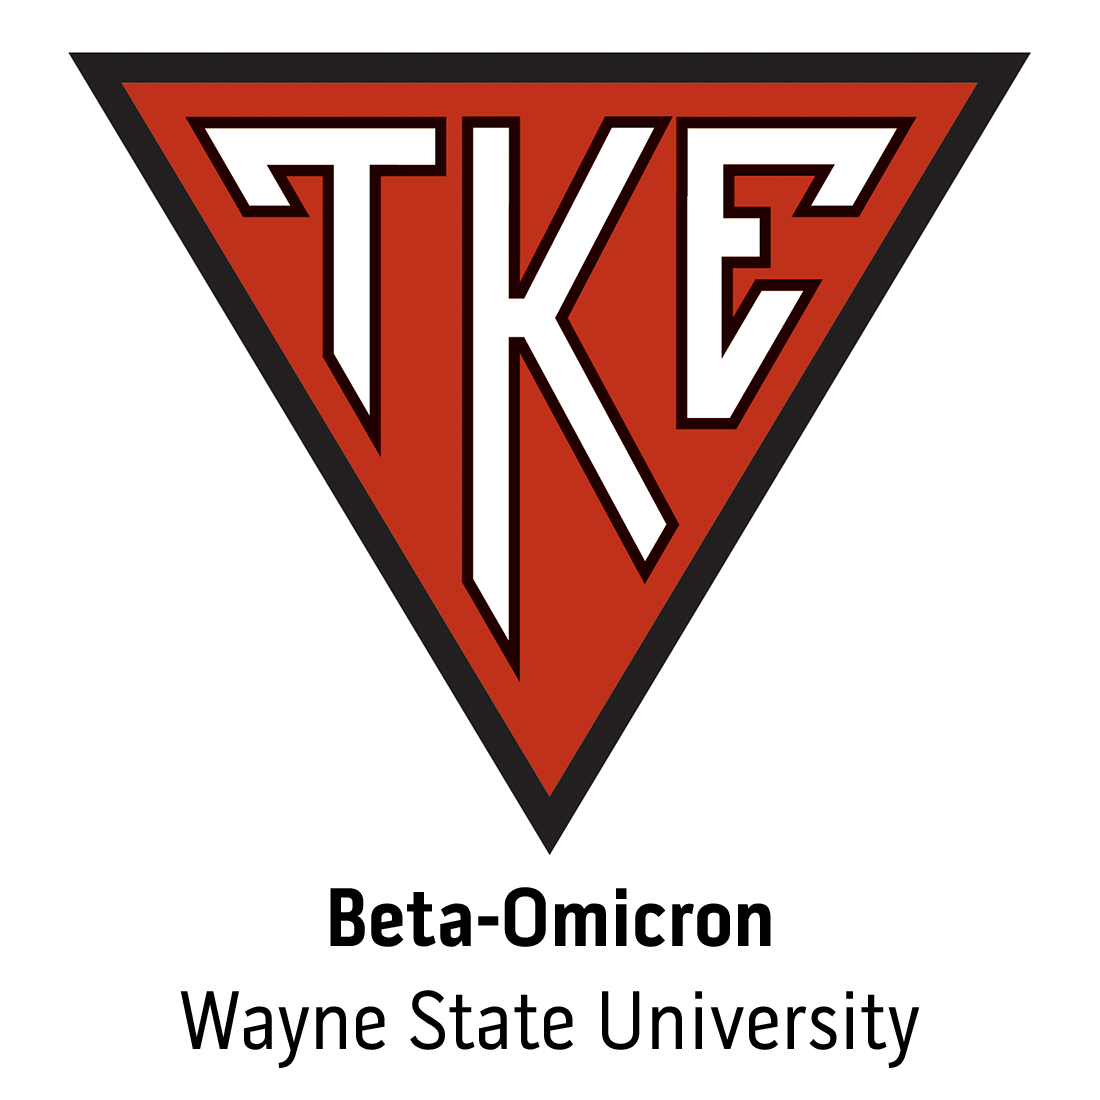 Beta-Omicron Chapter at Wayne State University